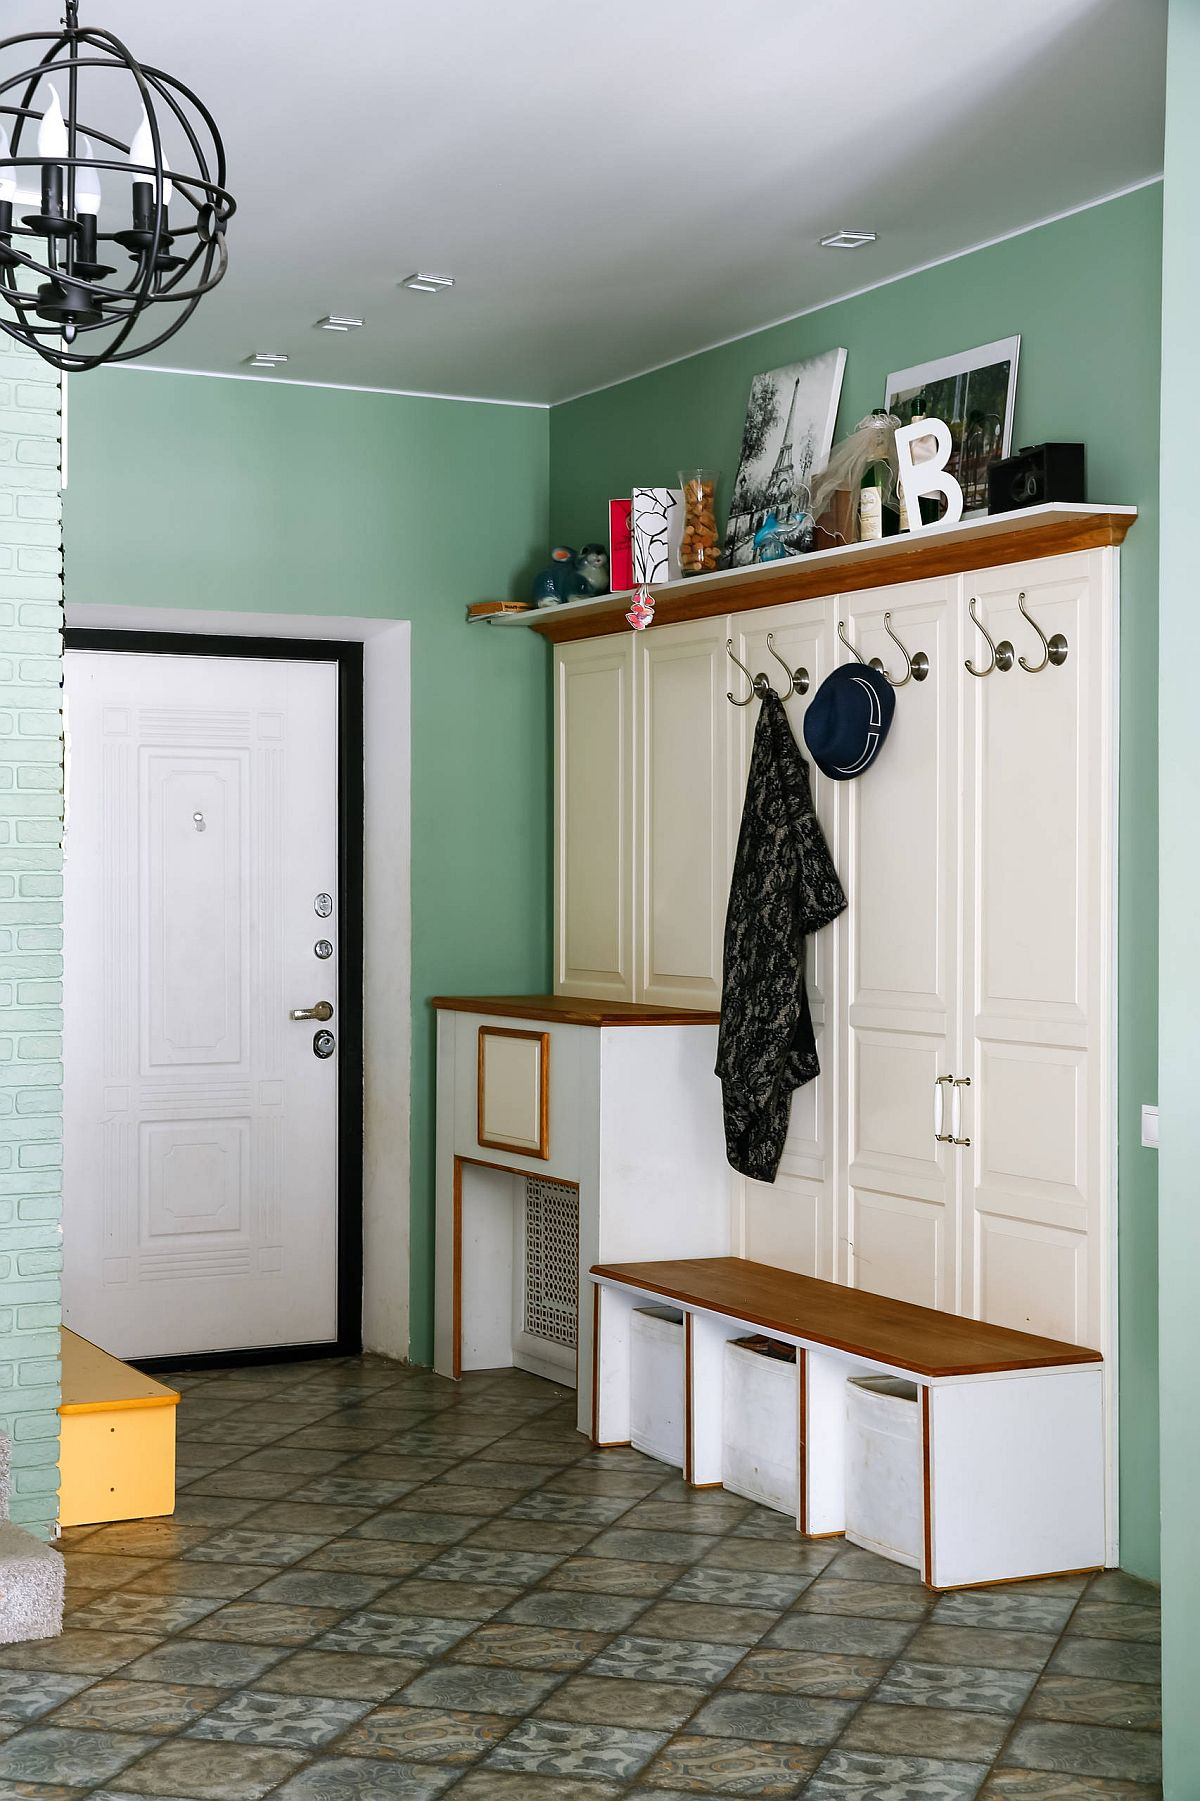 Light and pastel green combined with white and wood in the smart entryway